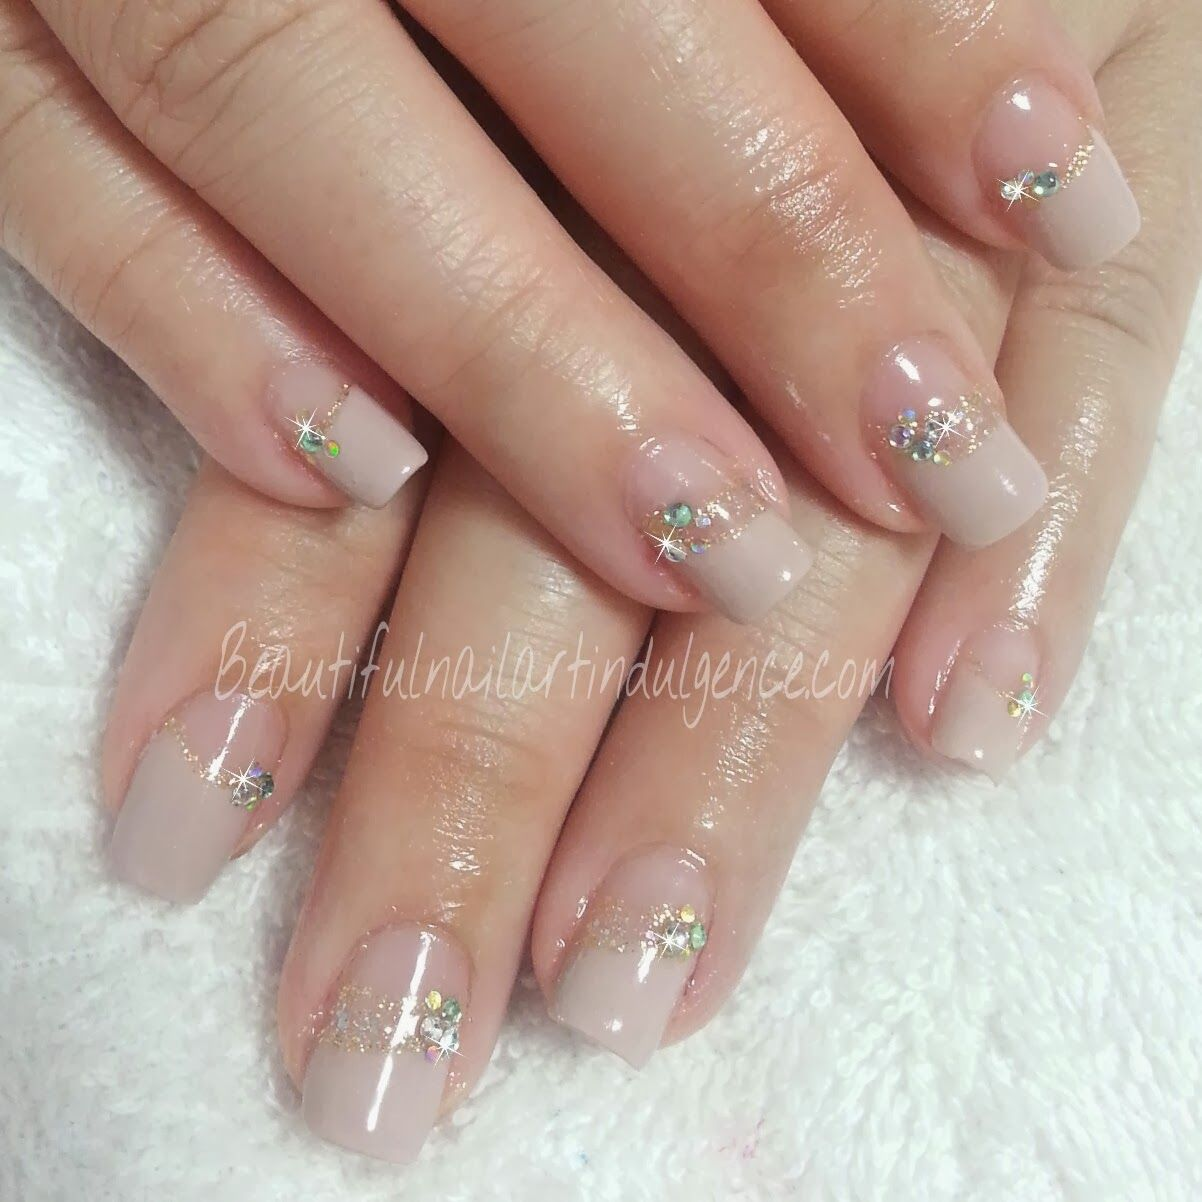 nude french nails w jewels | nails | Pinterest | French nails and ...